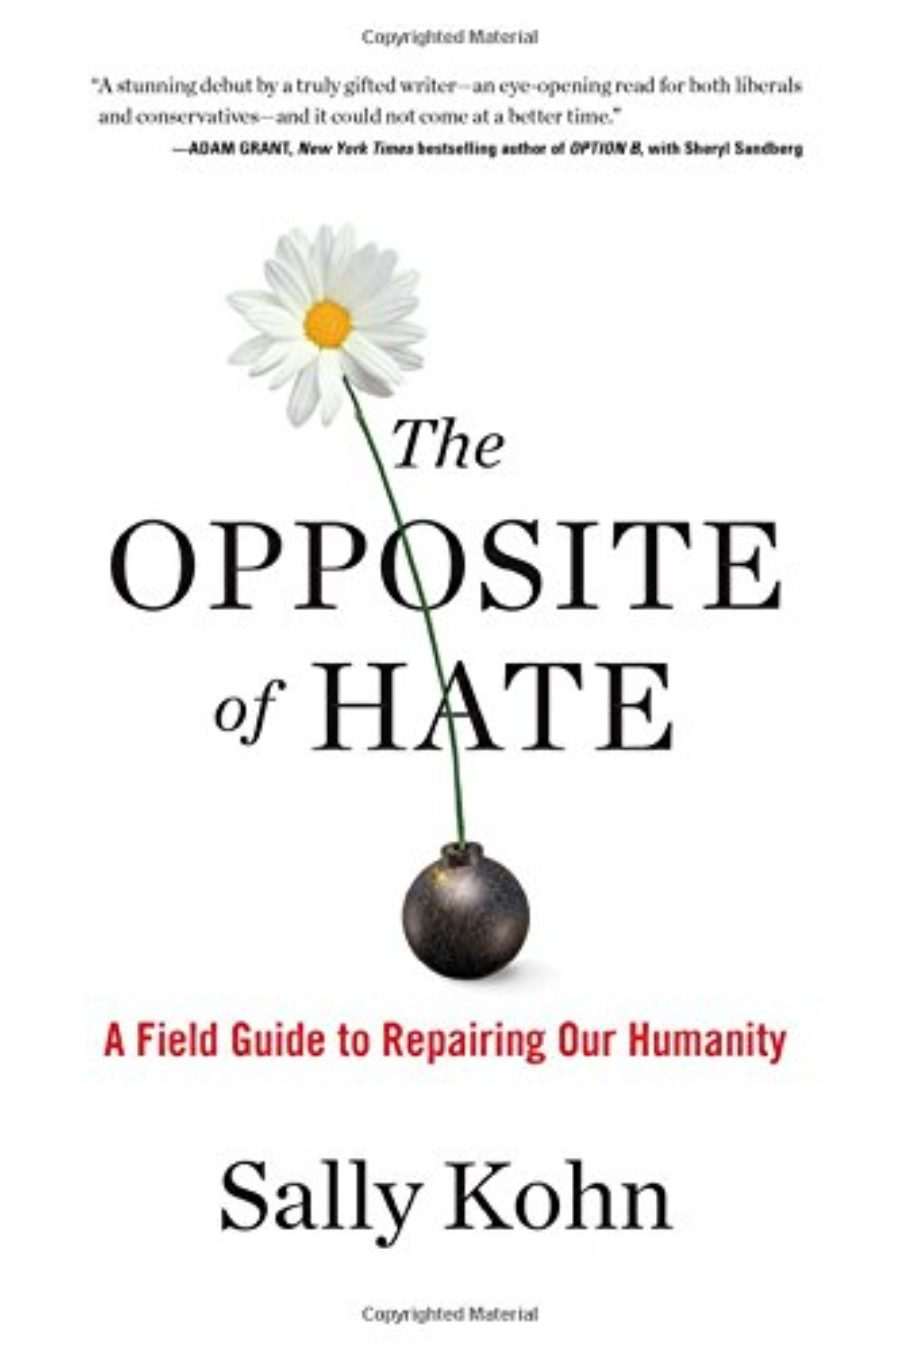 Cover of The Opposite of Hate: A Field Guide to Repairing Our Humanity